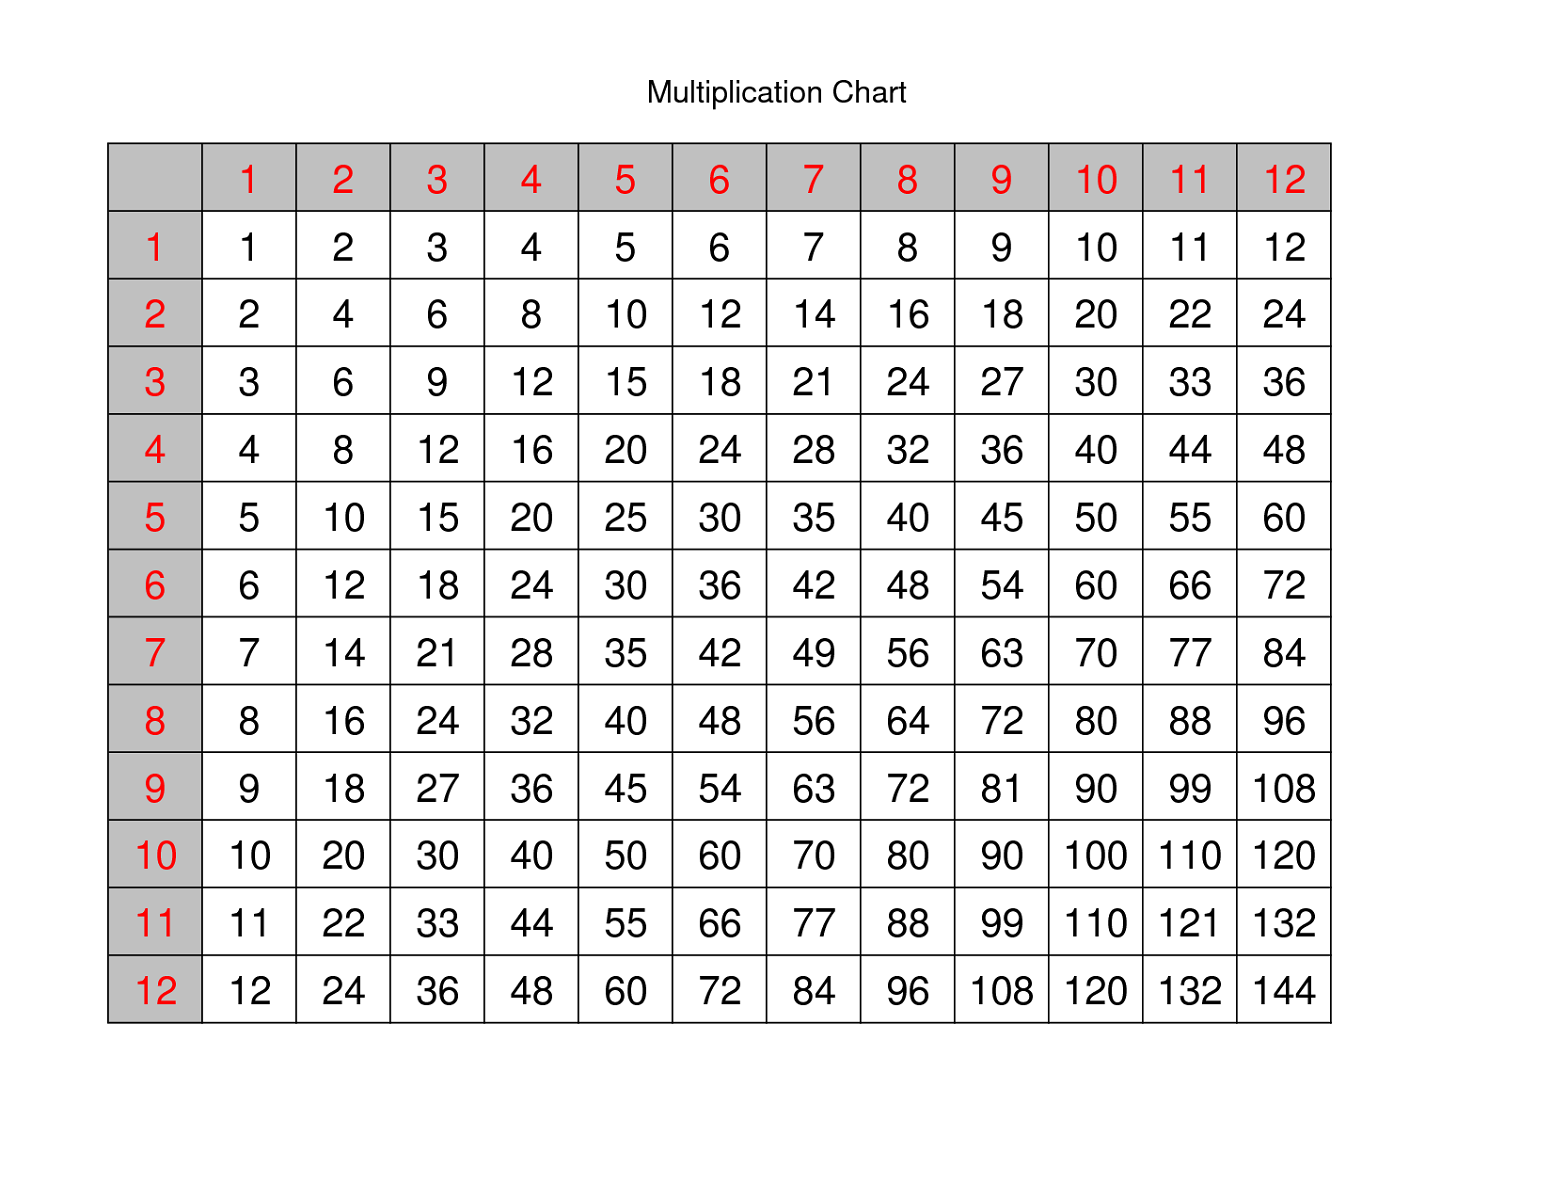 worksheet Times Table Chart printable time tables charts activity shelter times table chart template